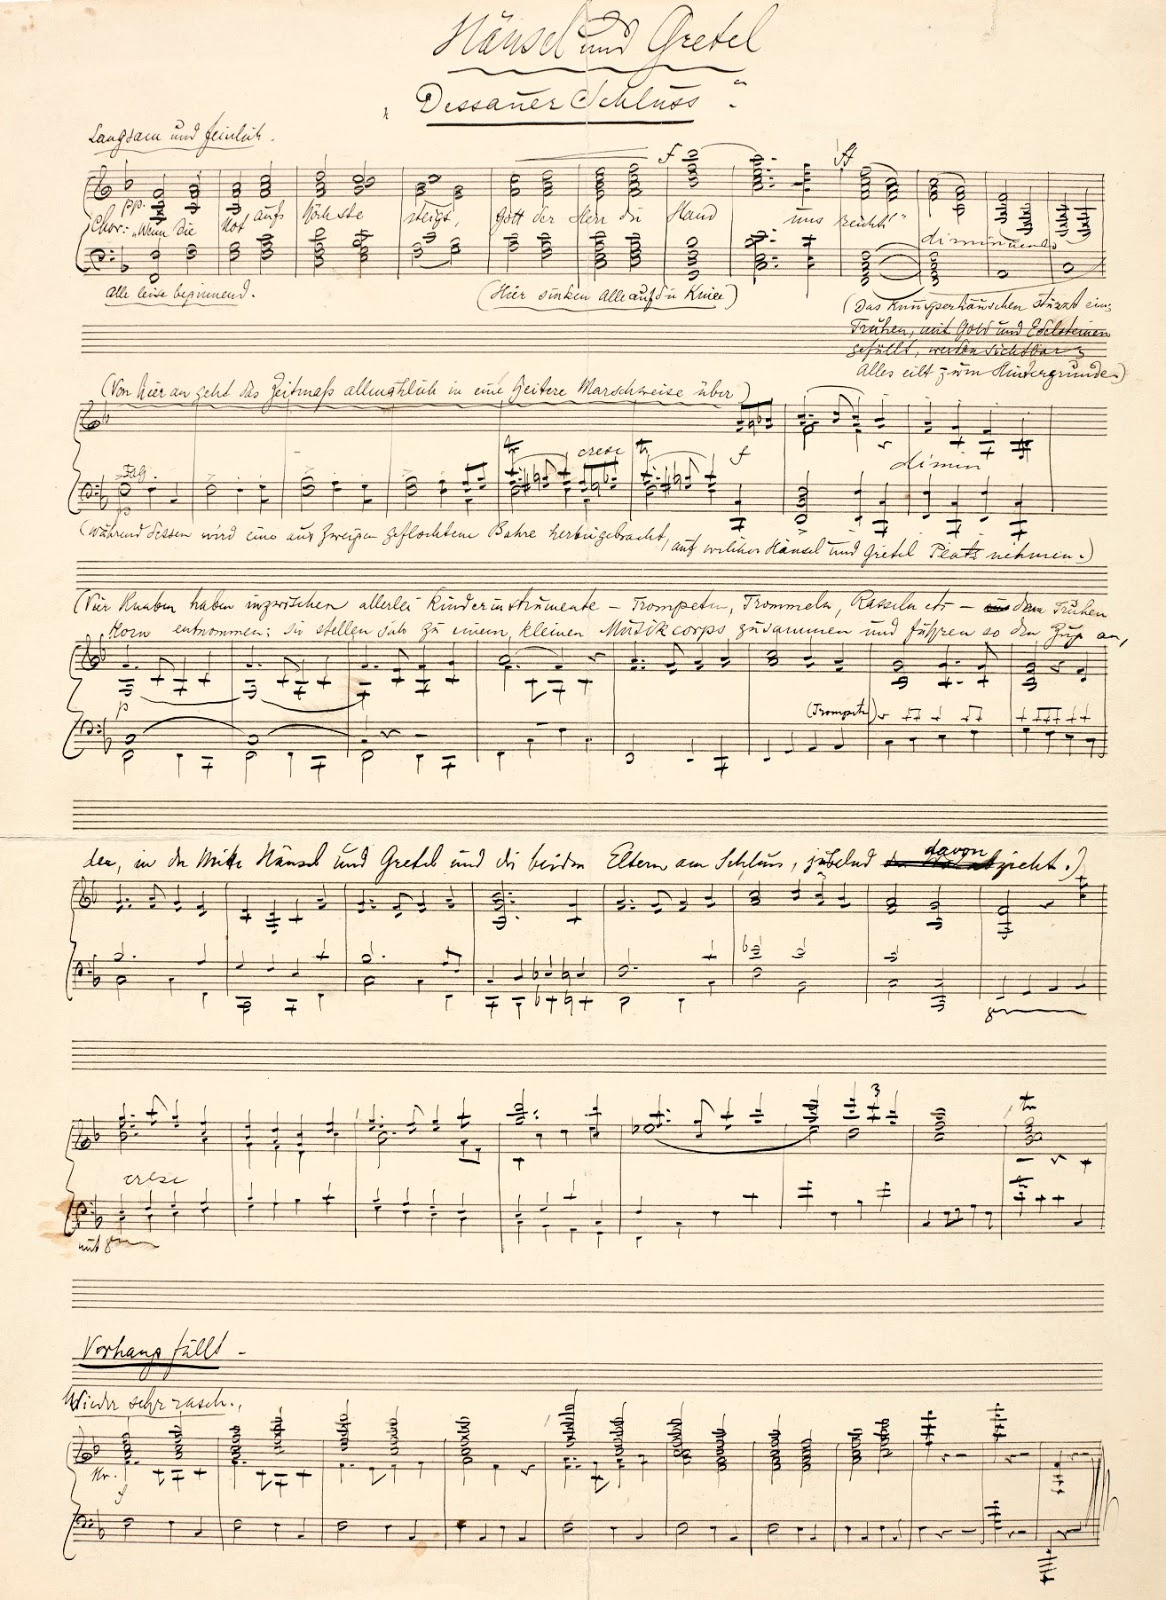 IN REVIEW: a page from Engelbert Humperdinck's autograph score of HÄNSEL UND GRETEL [Image from the Sotheby's collection]